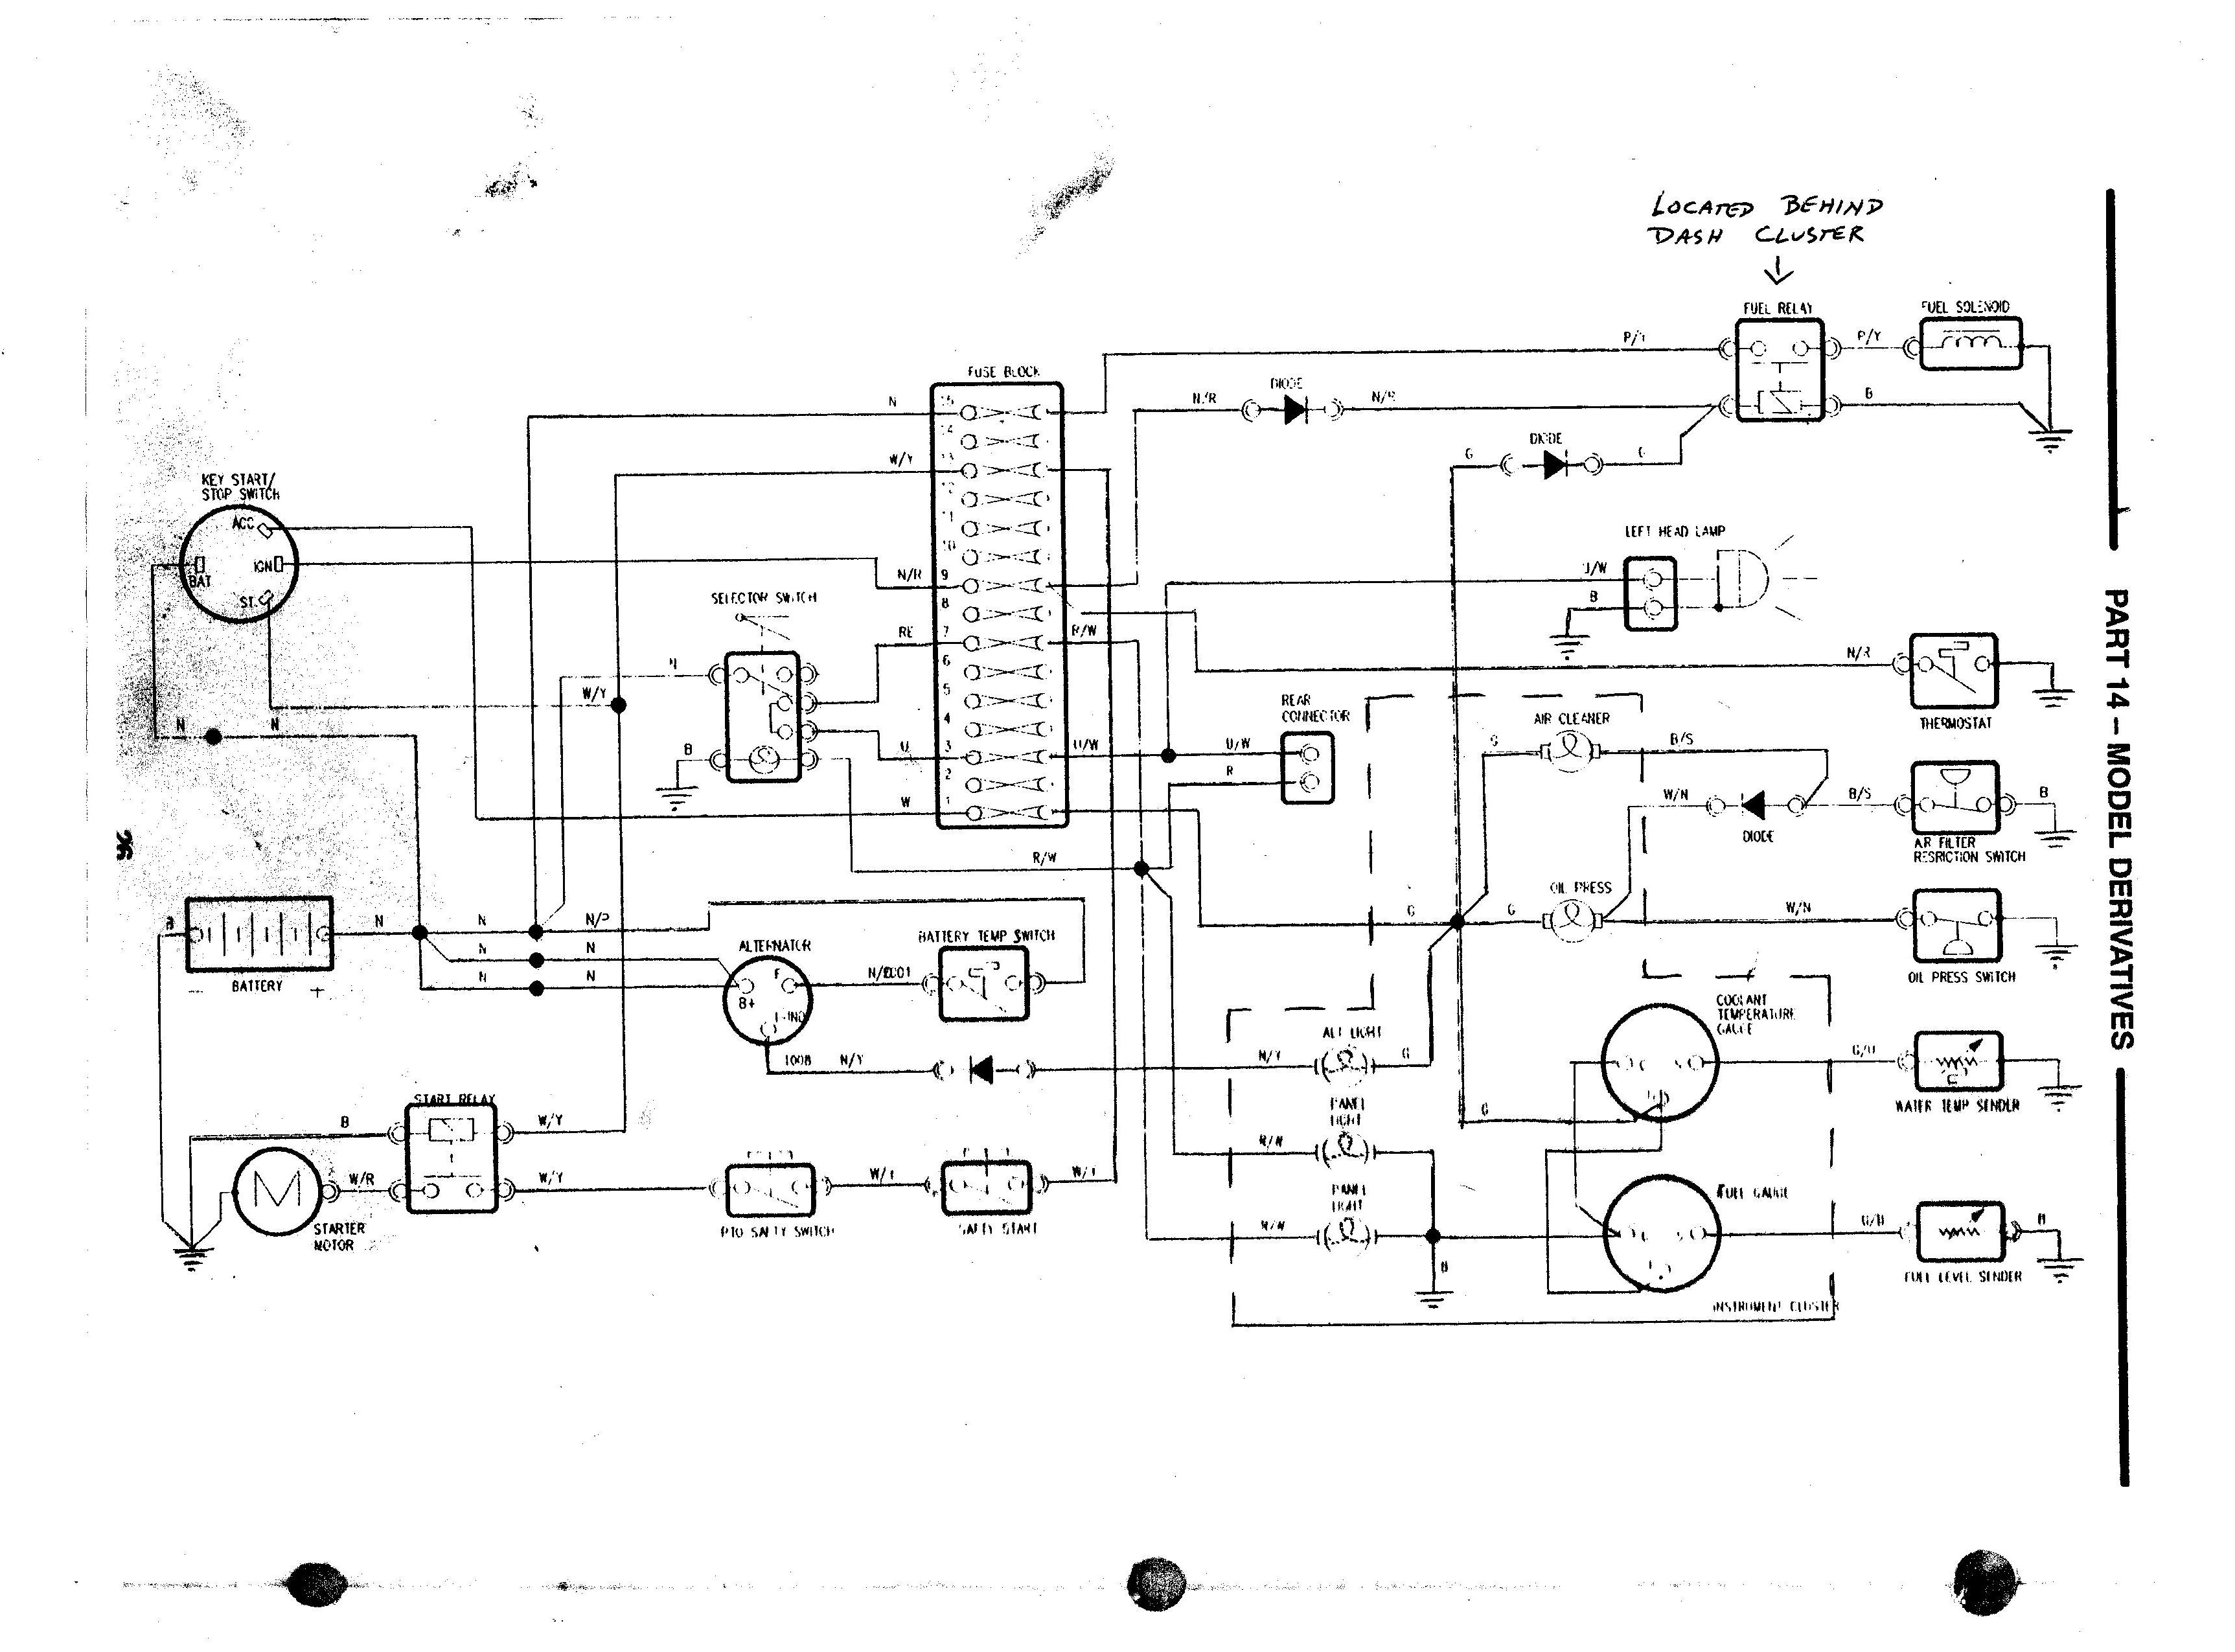 ford 3910 wiring diagram - tractorbynet  tractorbynet